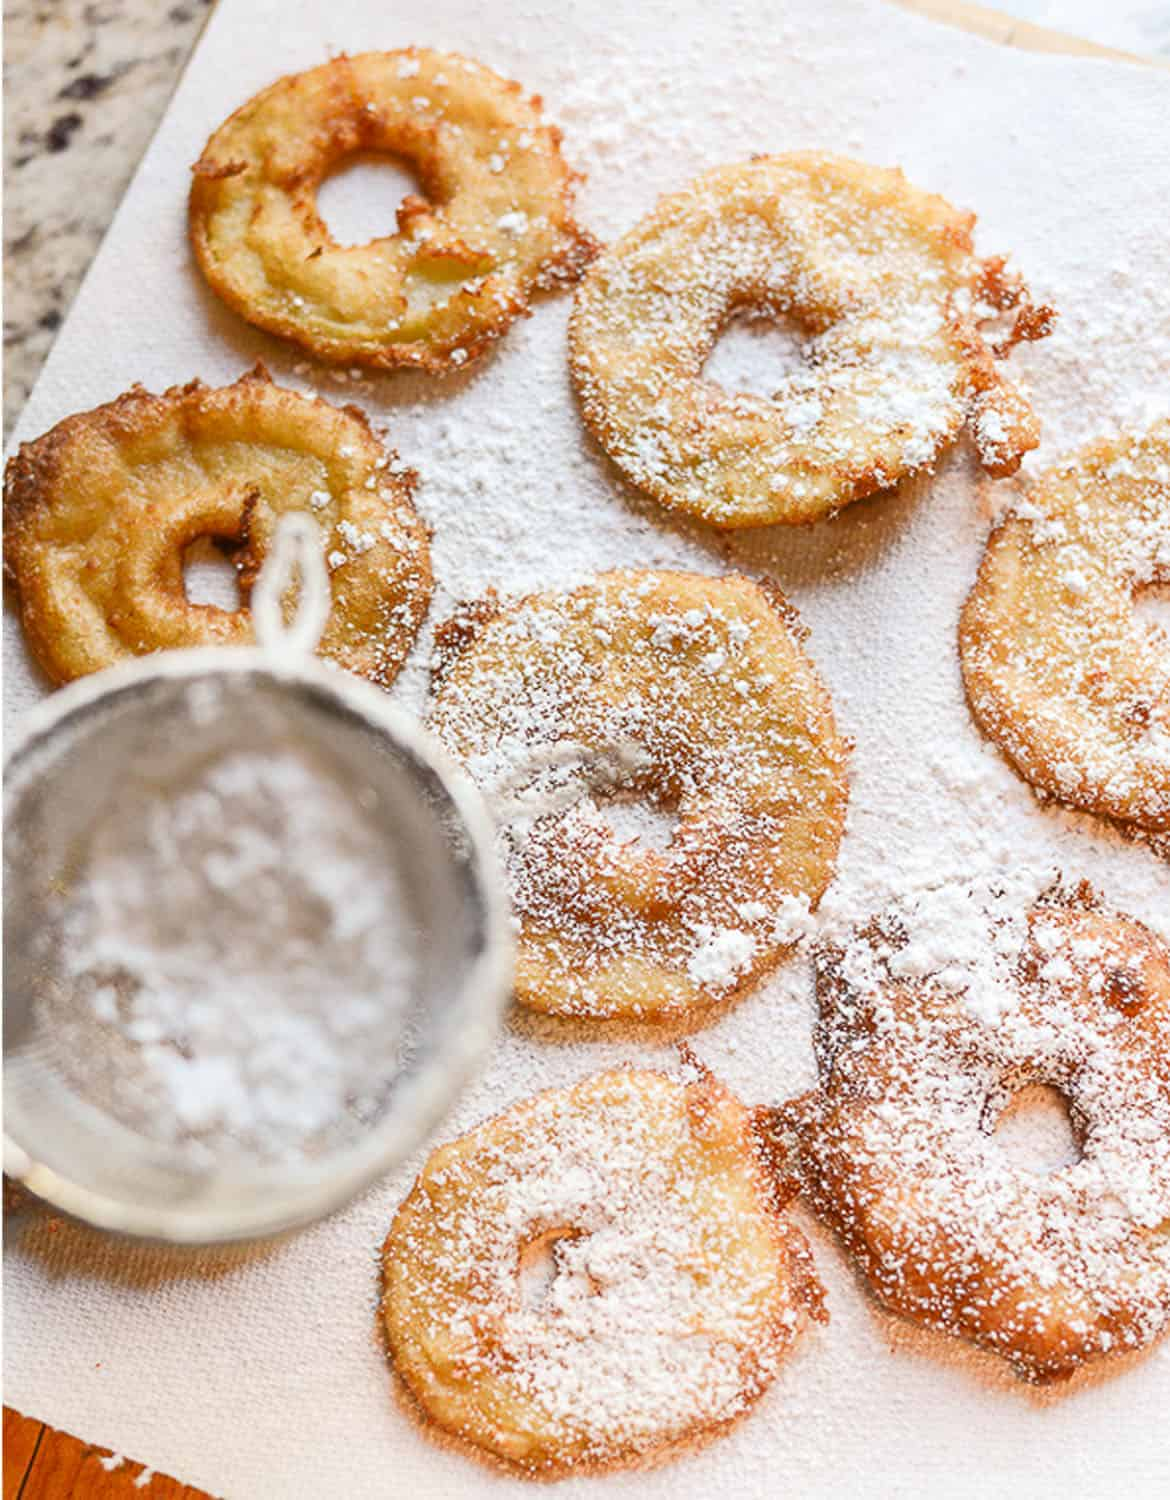 Apple fritter rings dusted with icing sugar over white parchment paper - Tikkido